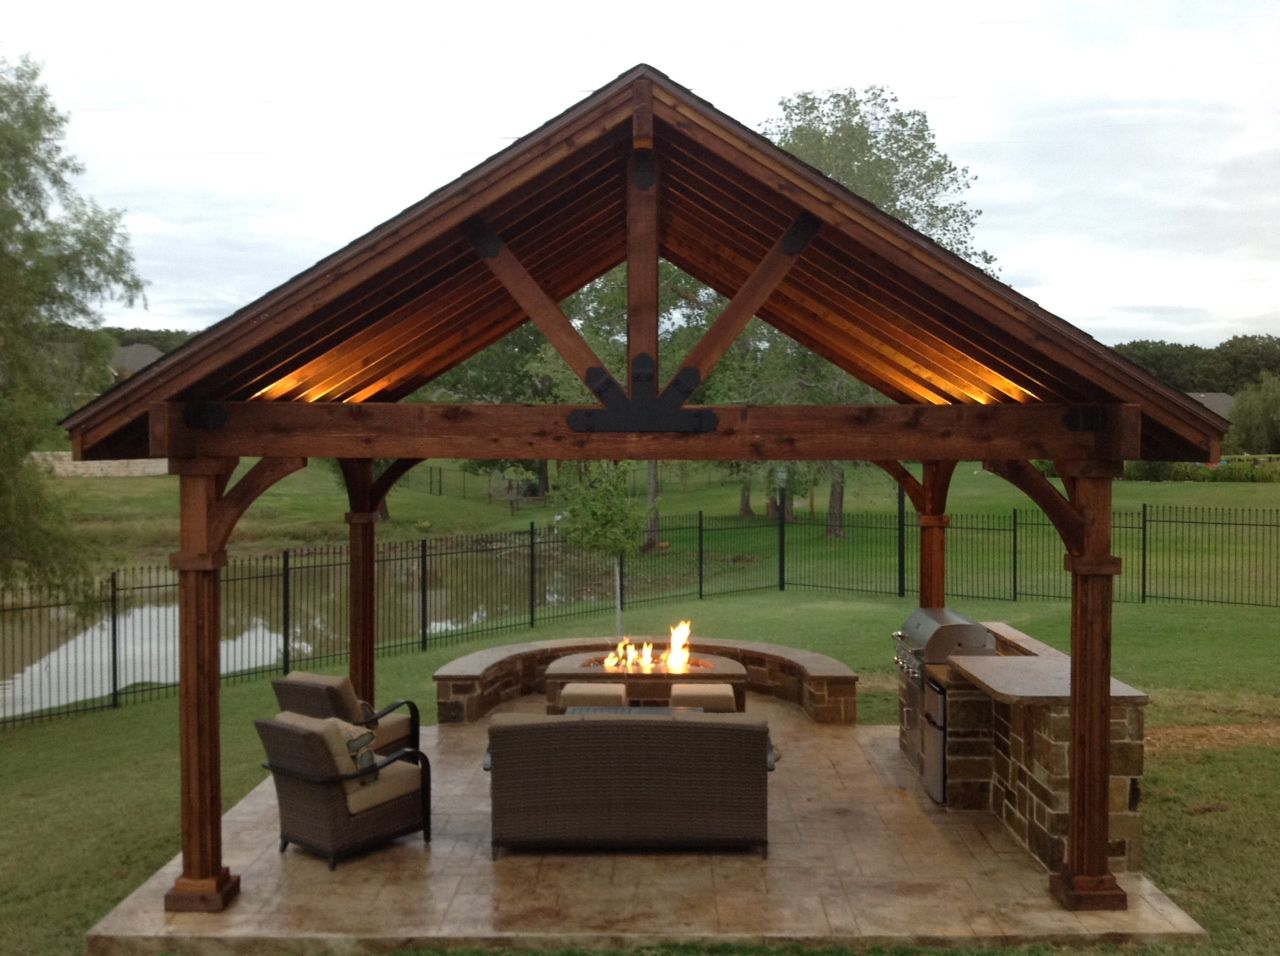 35 Beautiful And Functional Pavilion Design For Your Home Page 4 Of 21 Backyard Pavilion Outdoor Pergola Pergola Plans